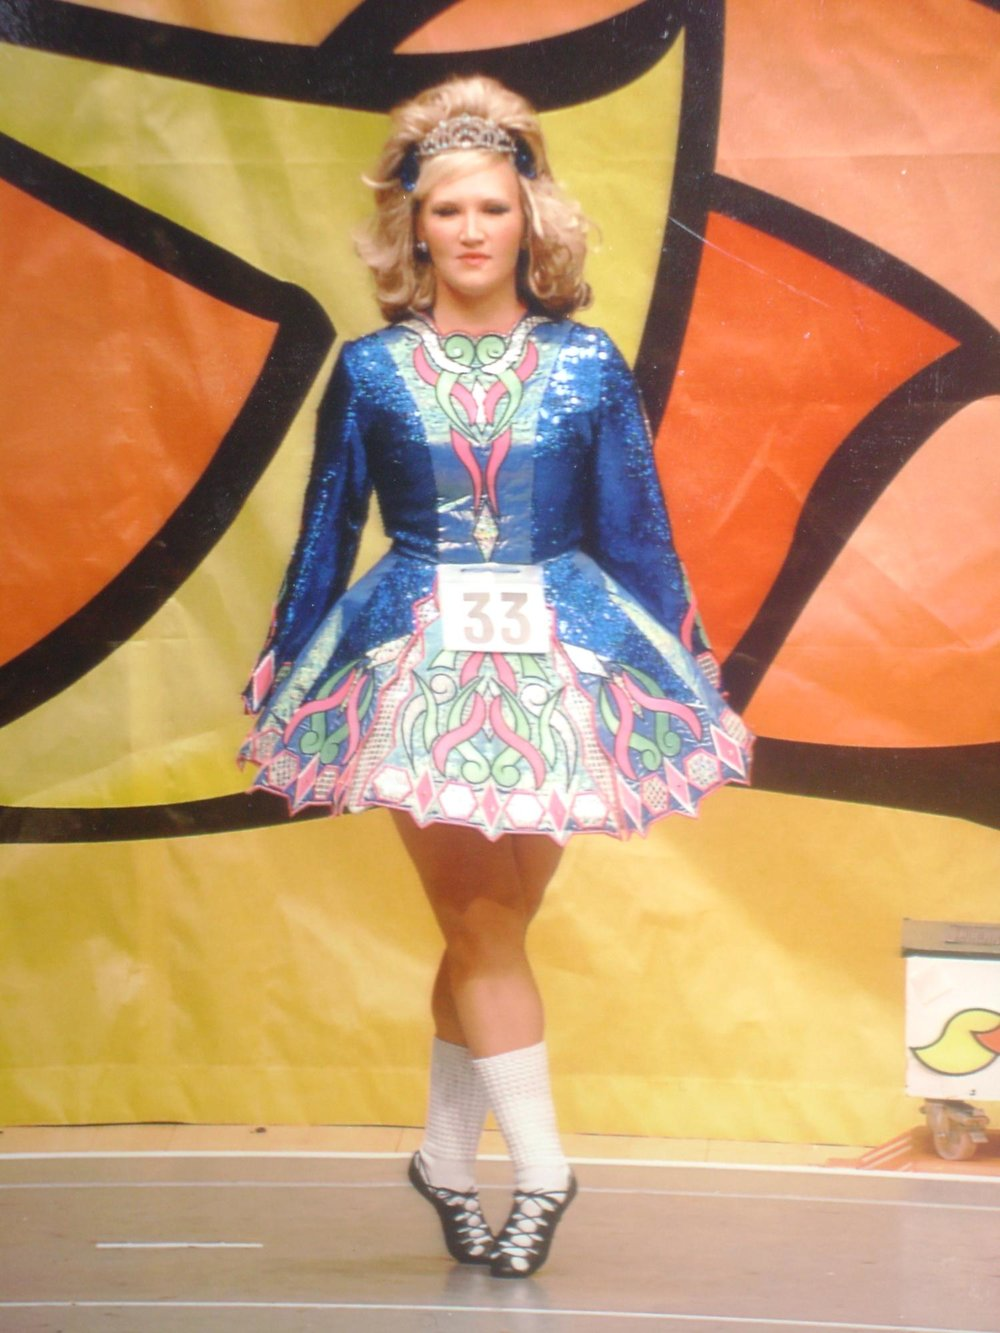 Katie Carver    ,  Champion Irish Step Dancer, is also long thought of as 'Family' in Dandridge. She will bring her students to perform Irish Dancing on the Lowland Stage. She will also perform in the Ceilidh on the Loch, Saturday night.